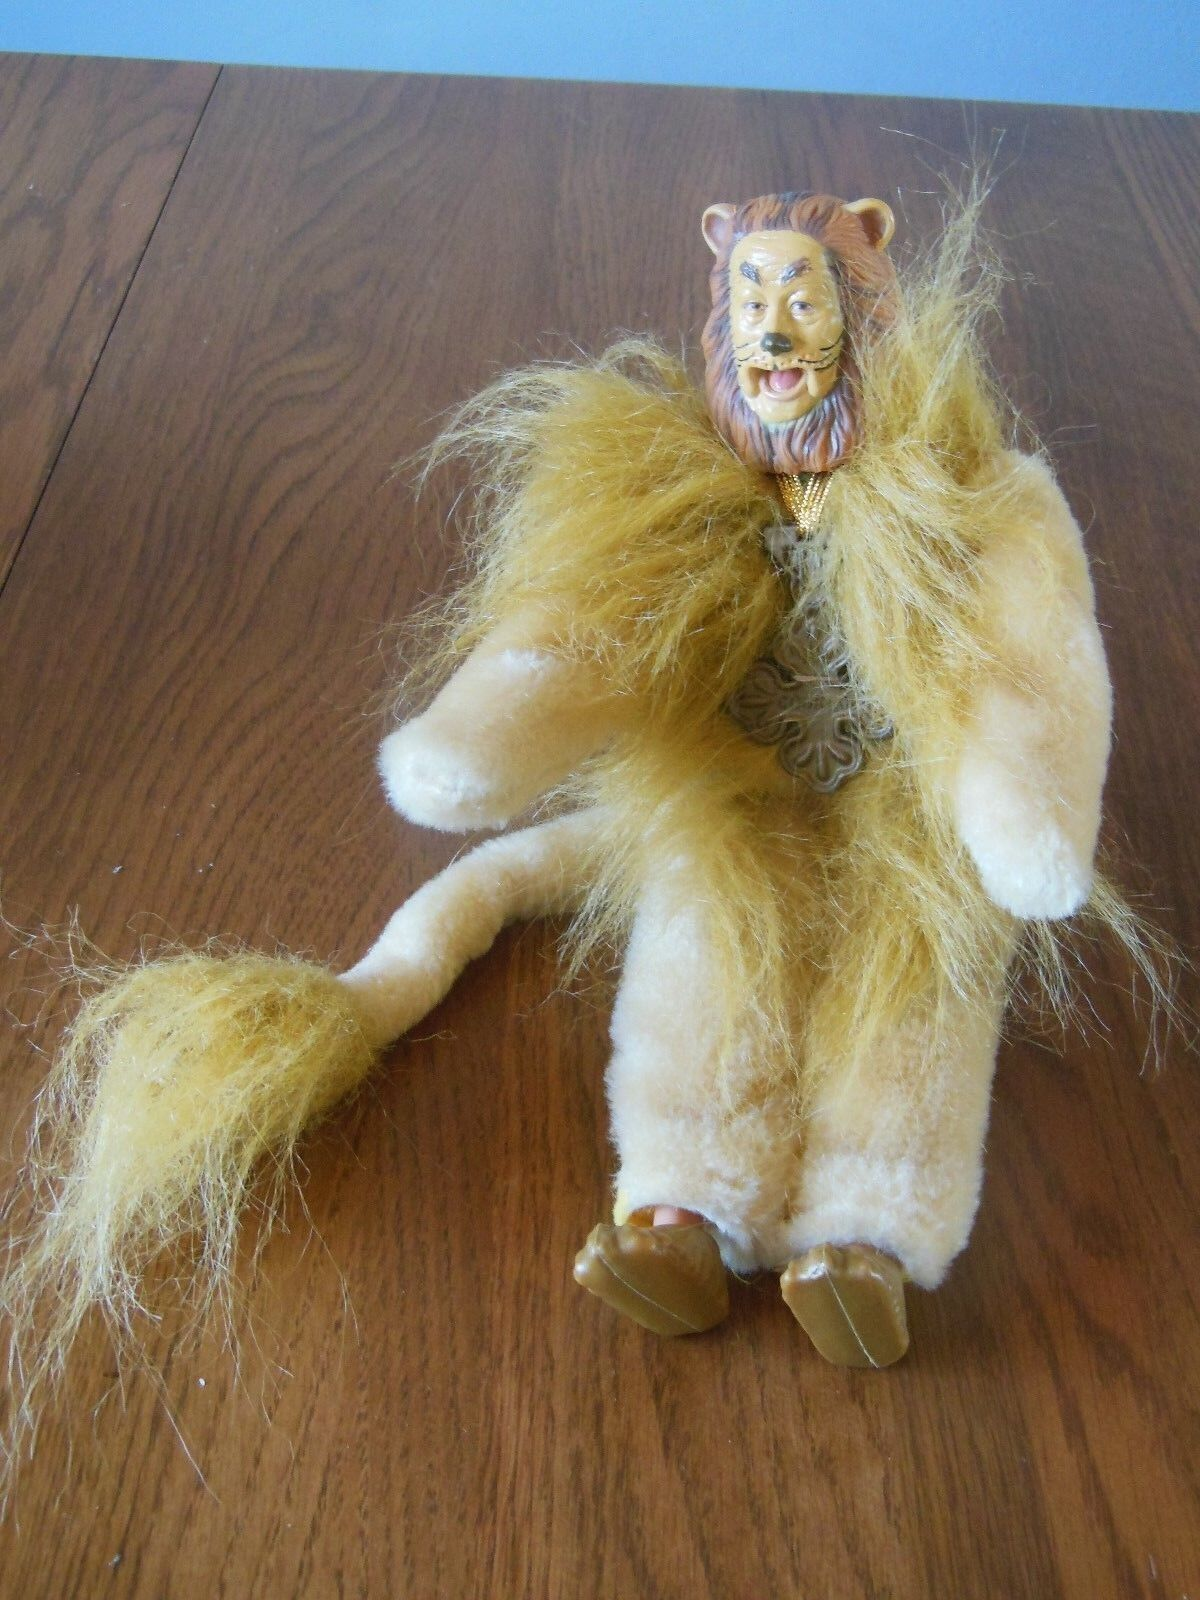 1994 Wizard of Oz Sky Kids Collectible Cowardly Lion Figure Doll 8859